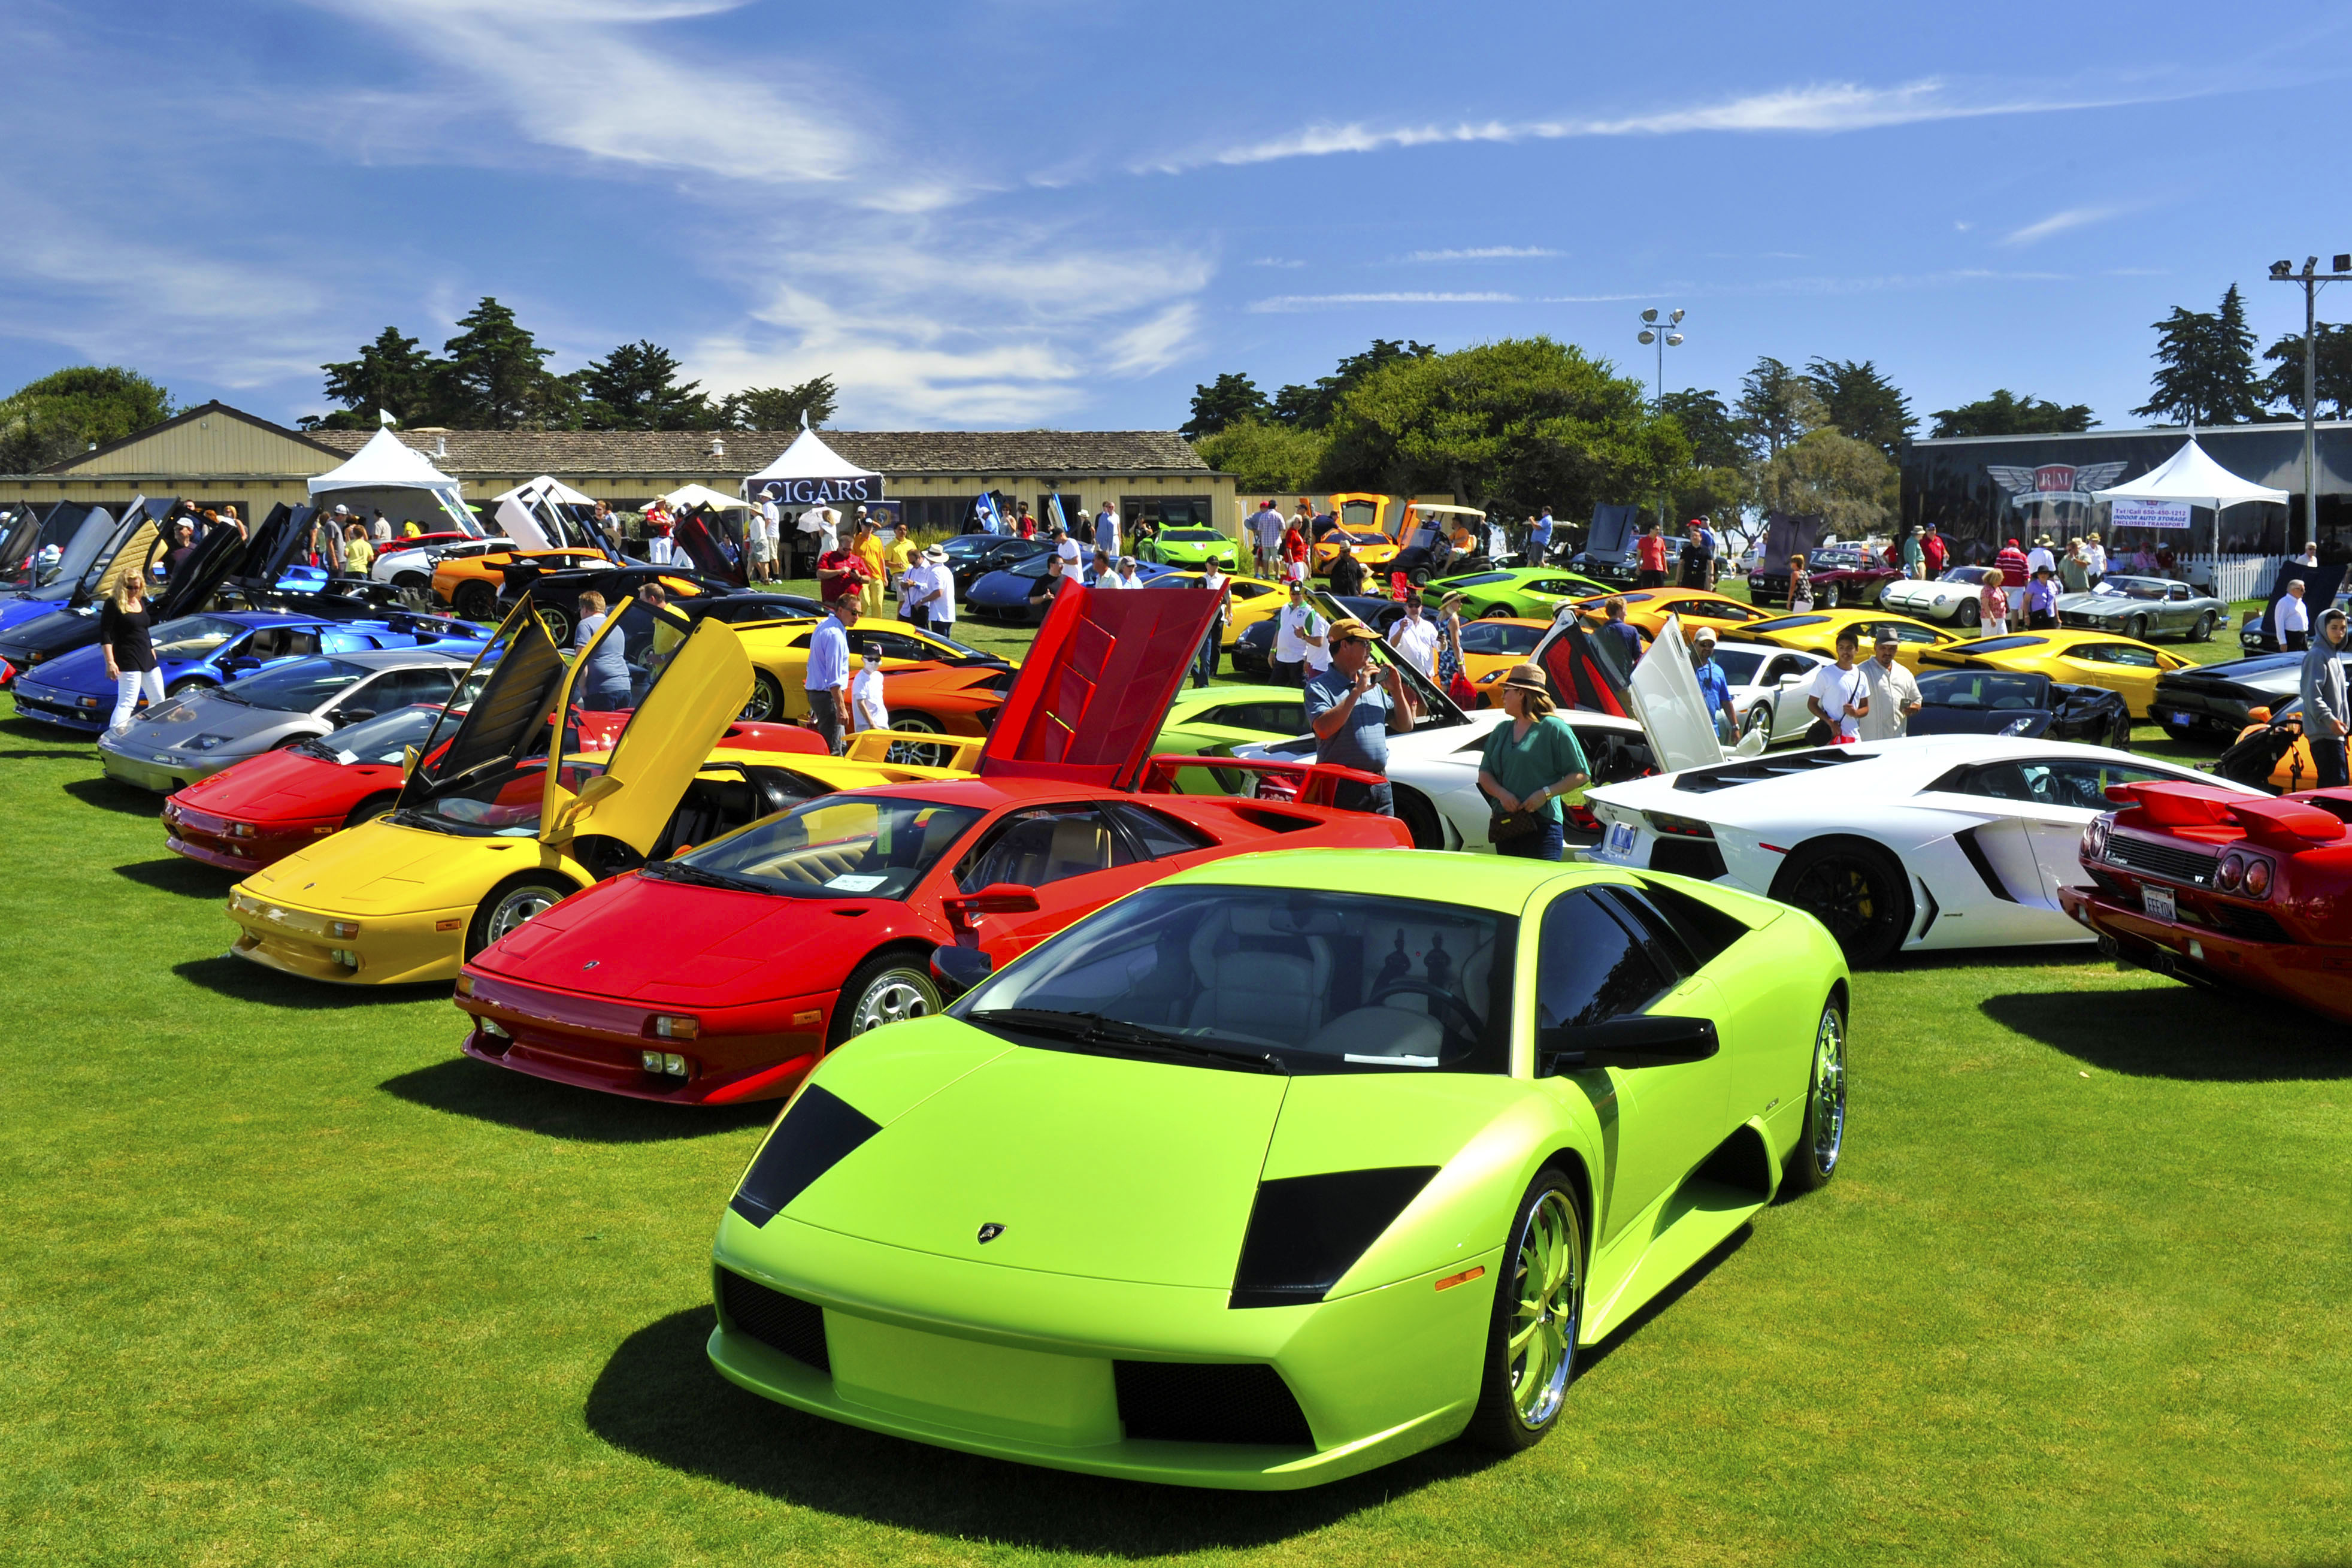 Concorso Italiano Announces Featured Cars For Its 33rd Annual Event